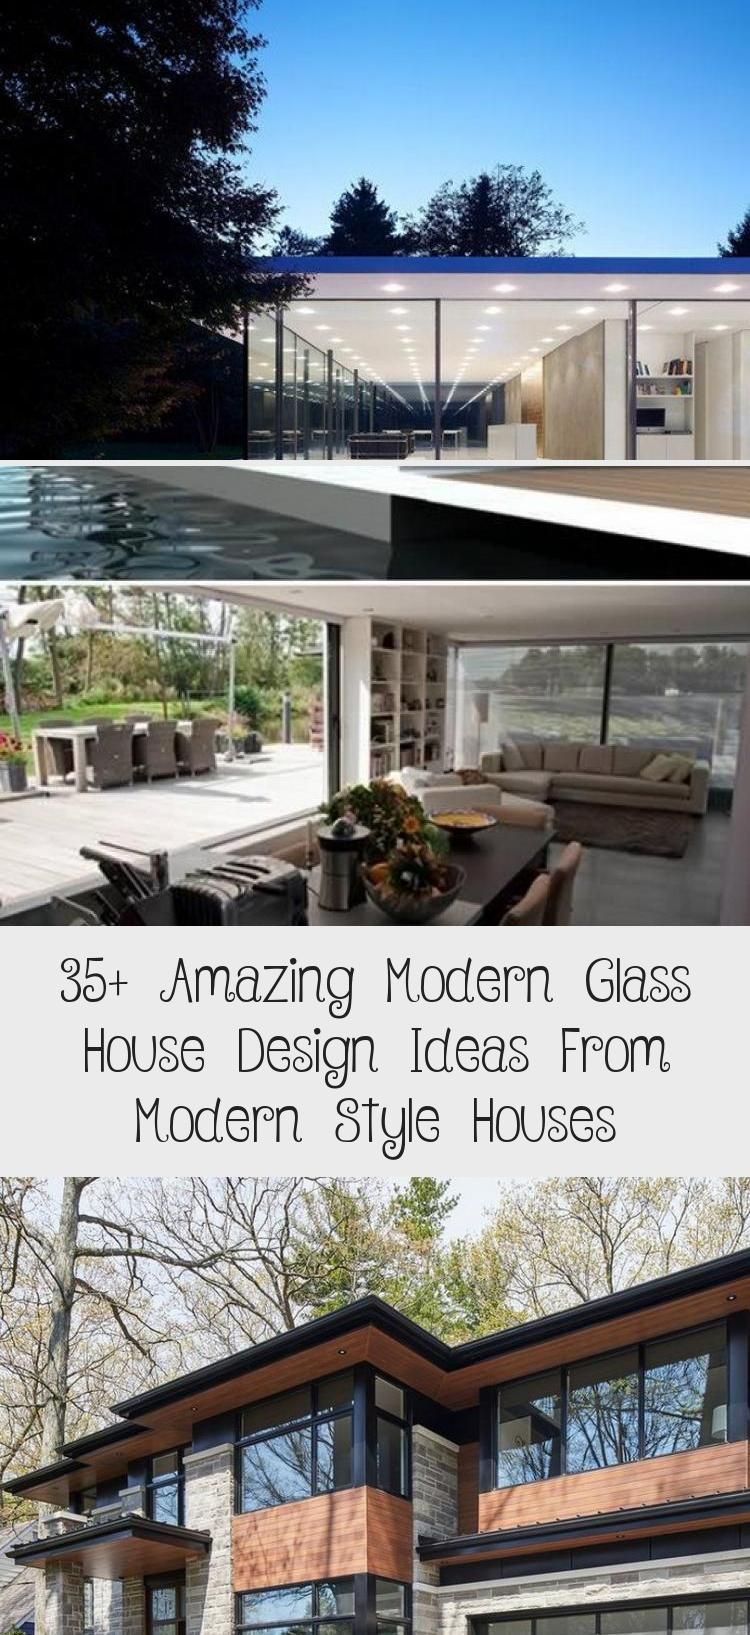 35 Amazing Modern Glass House Design Ideas From Modern Style Houses Pinokyo Modern Glass House Glass House Design Glass House